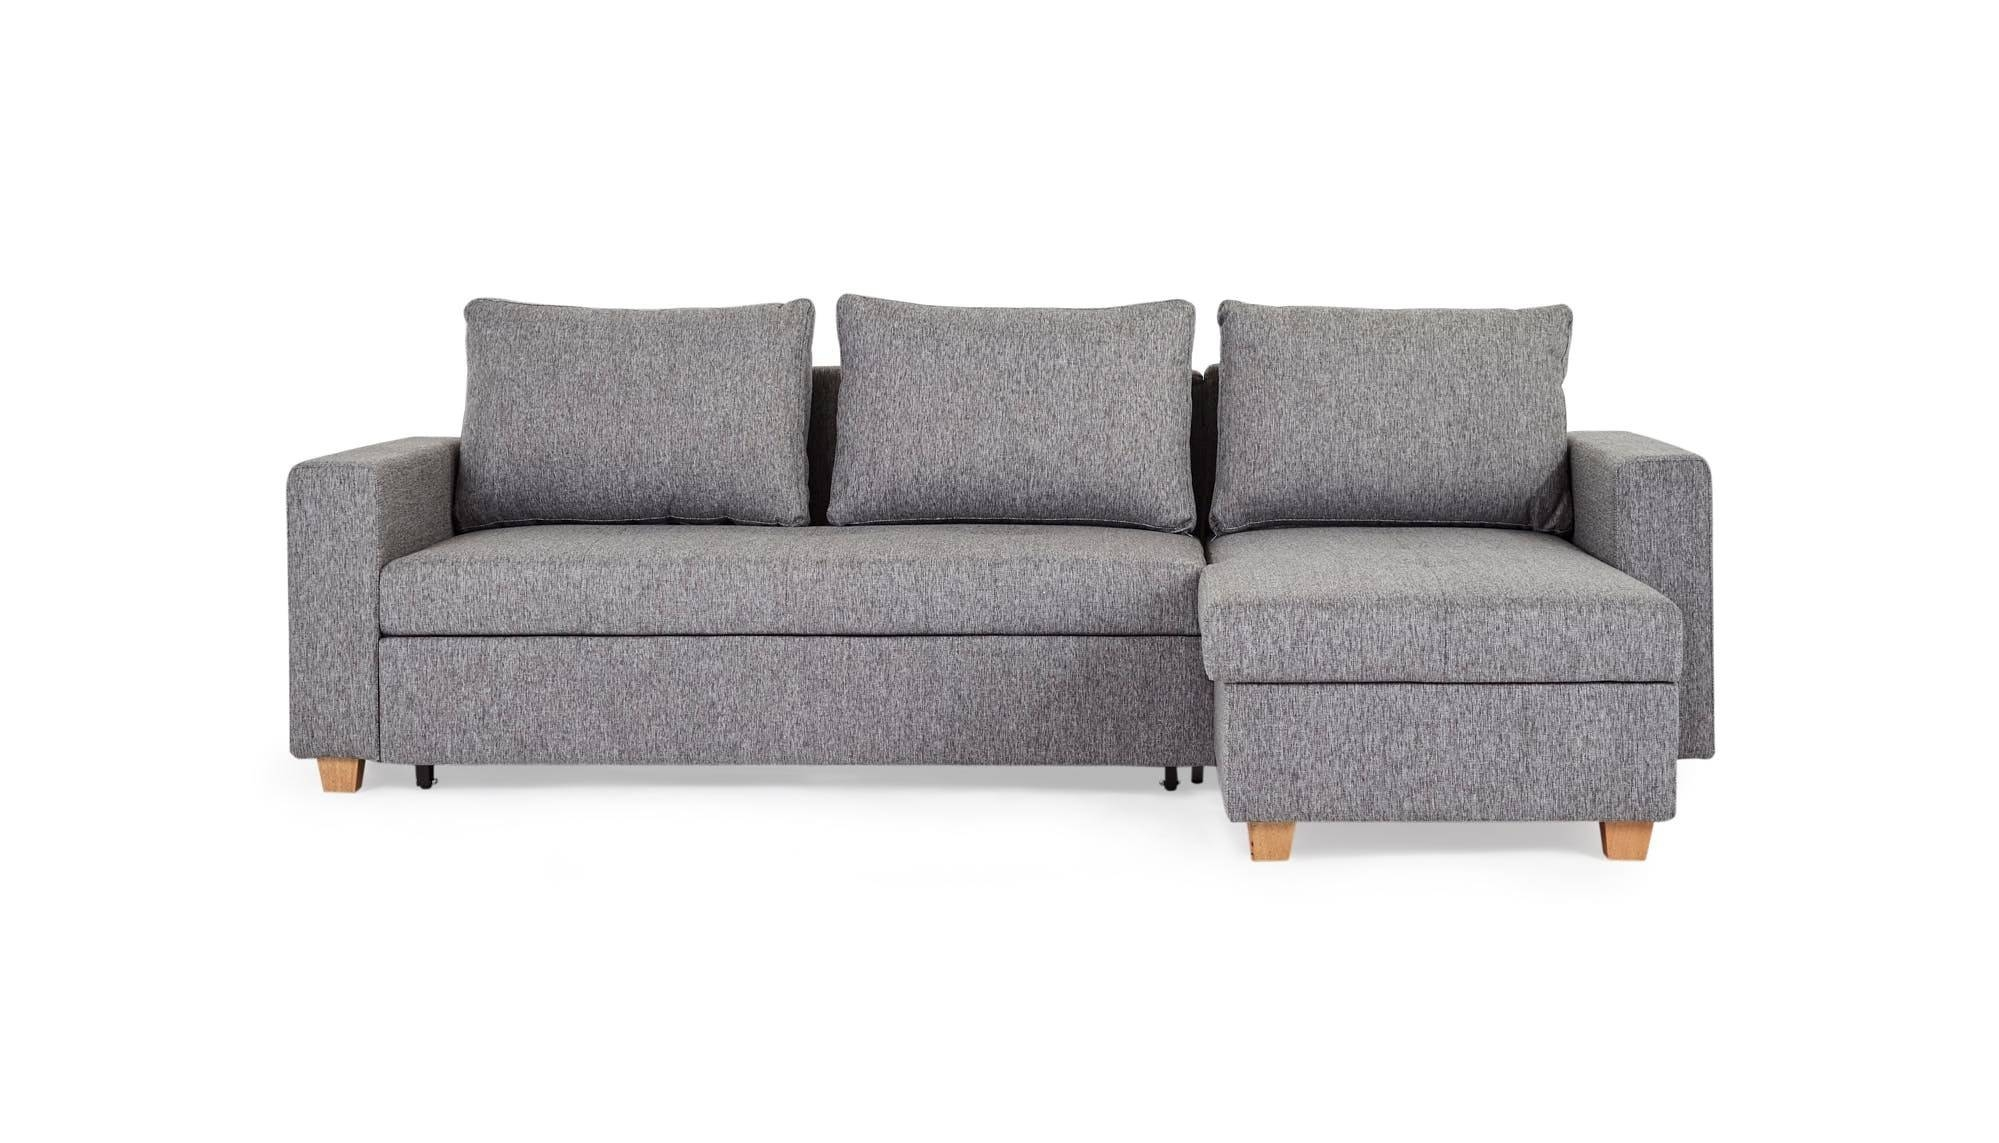 Chicago Storage - Corner Sofa Bed | Loungelovers inside Corner Couch Bed (Image 8 of 30)